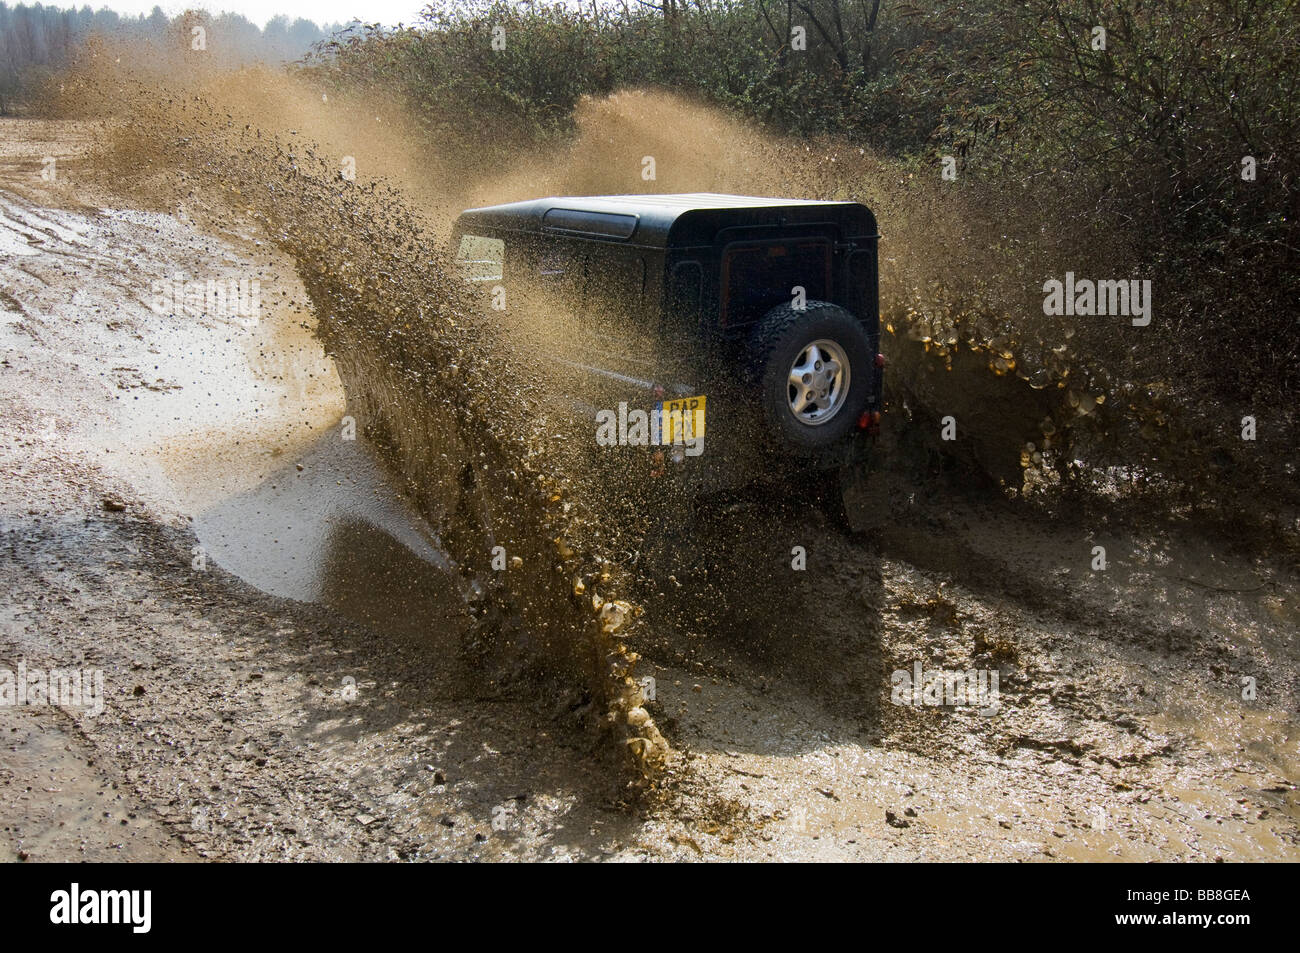 A Landrover Defender driving along a muddy track on an off road exercise - Stock Image